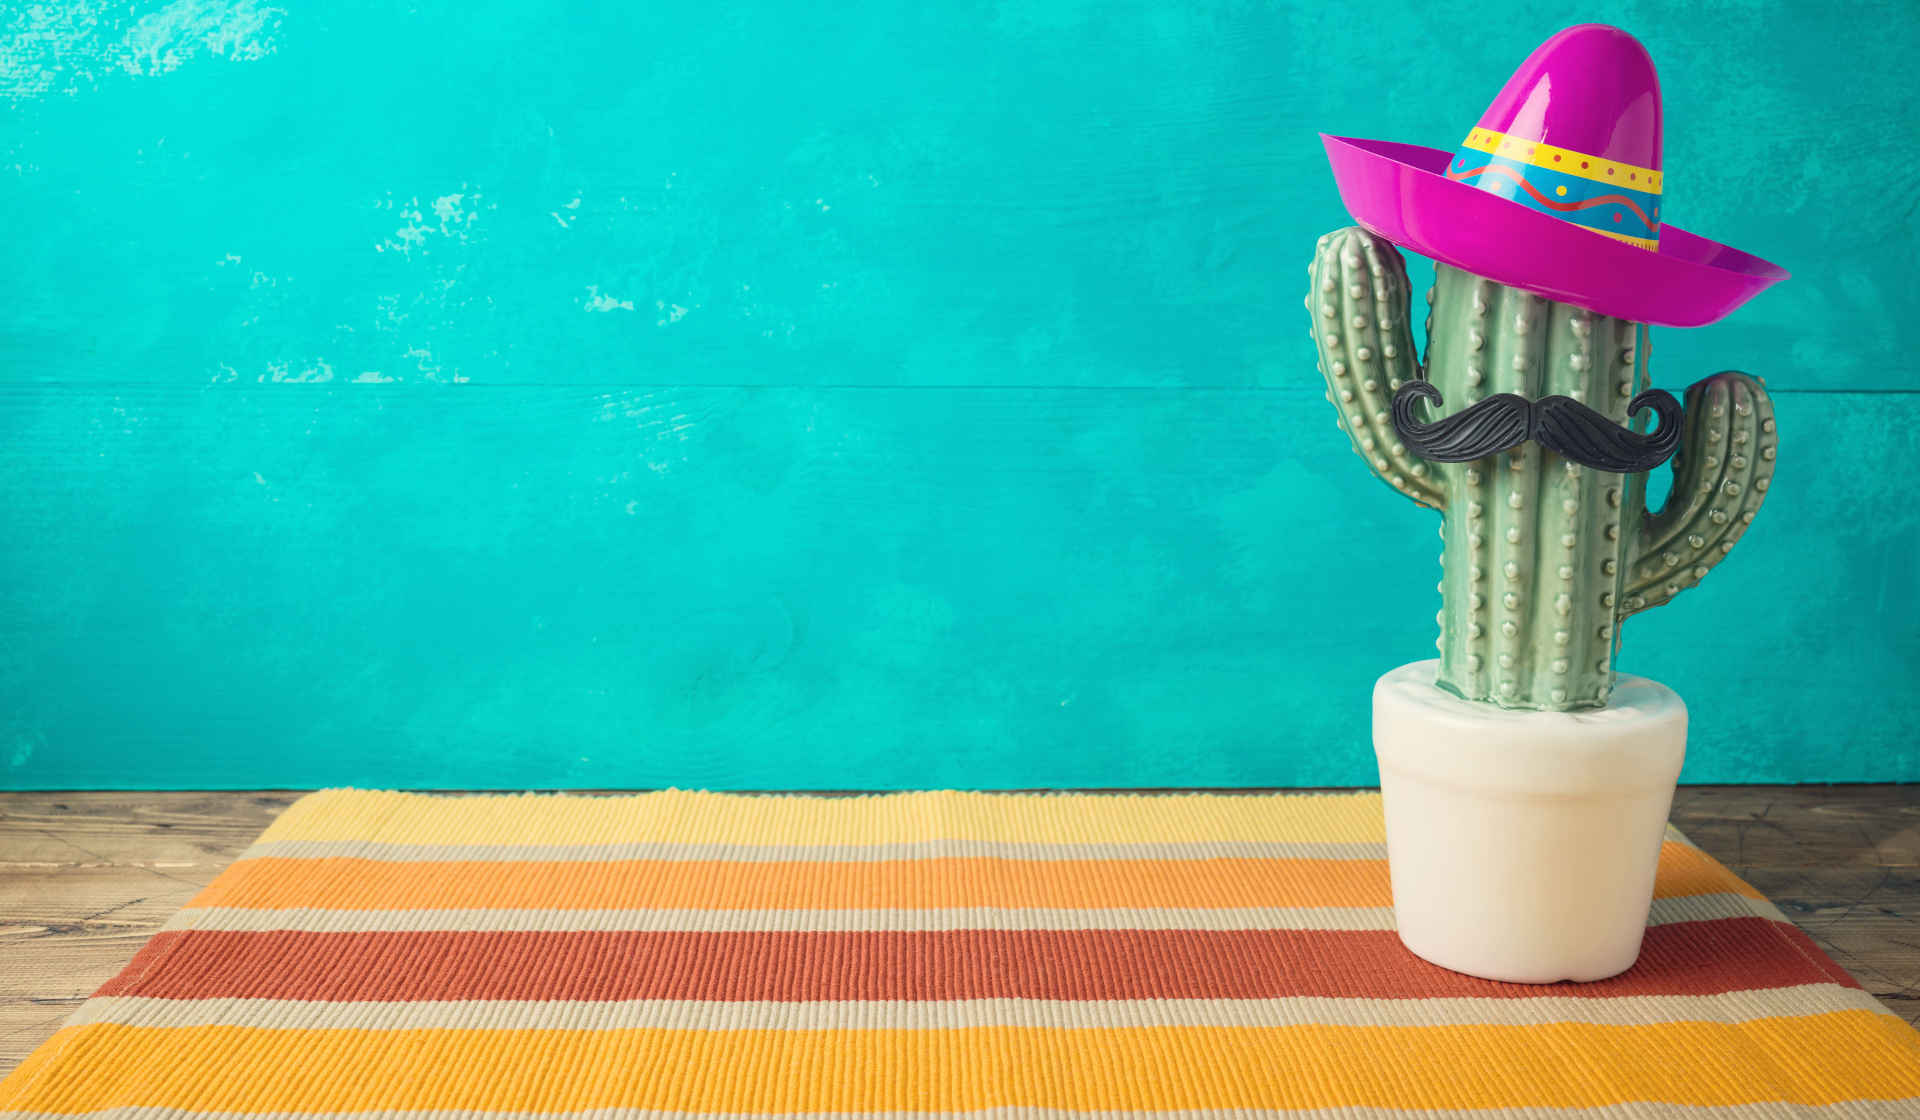 Facts about Mexico that you definitely didn't know